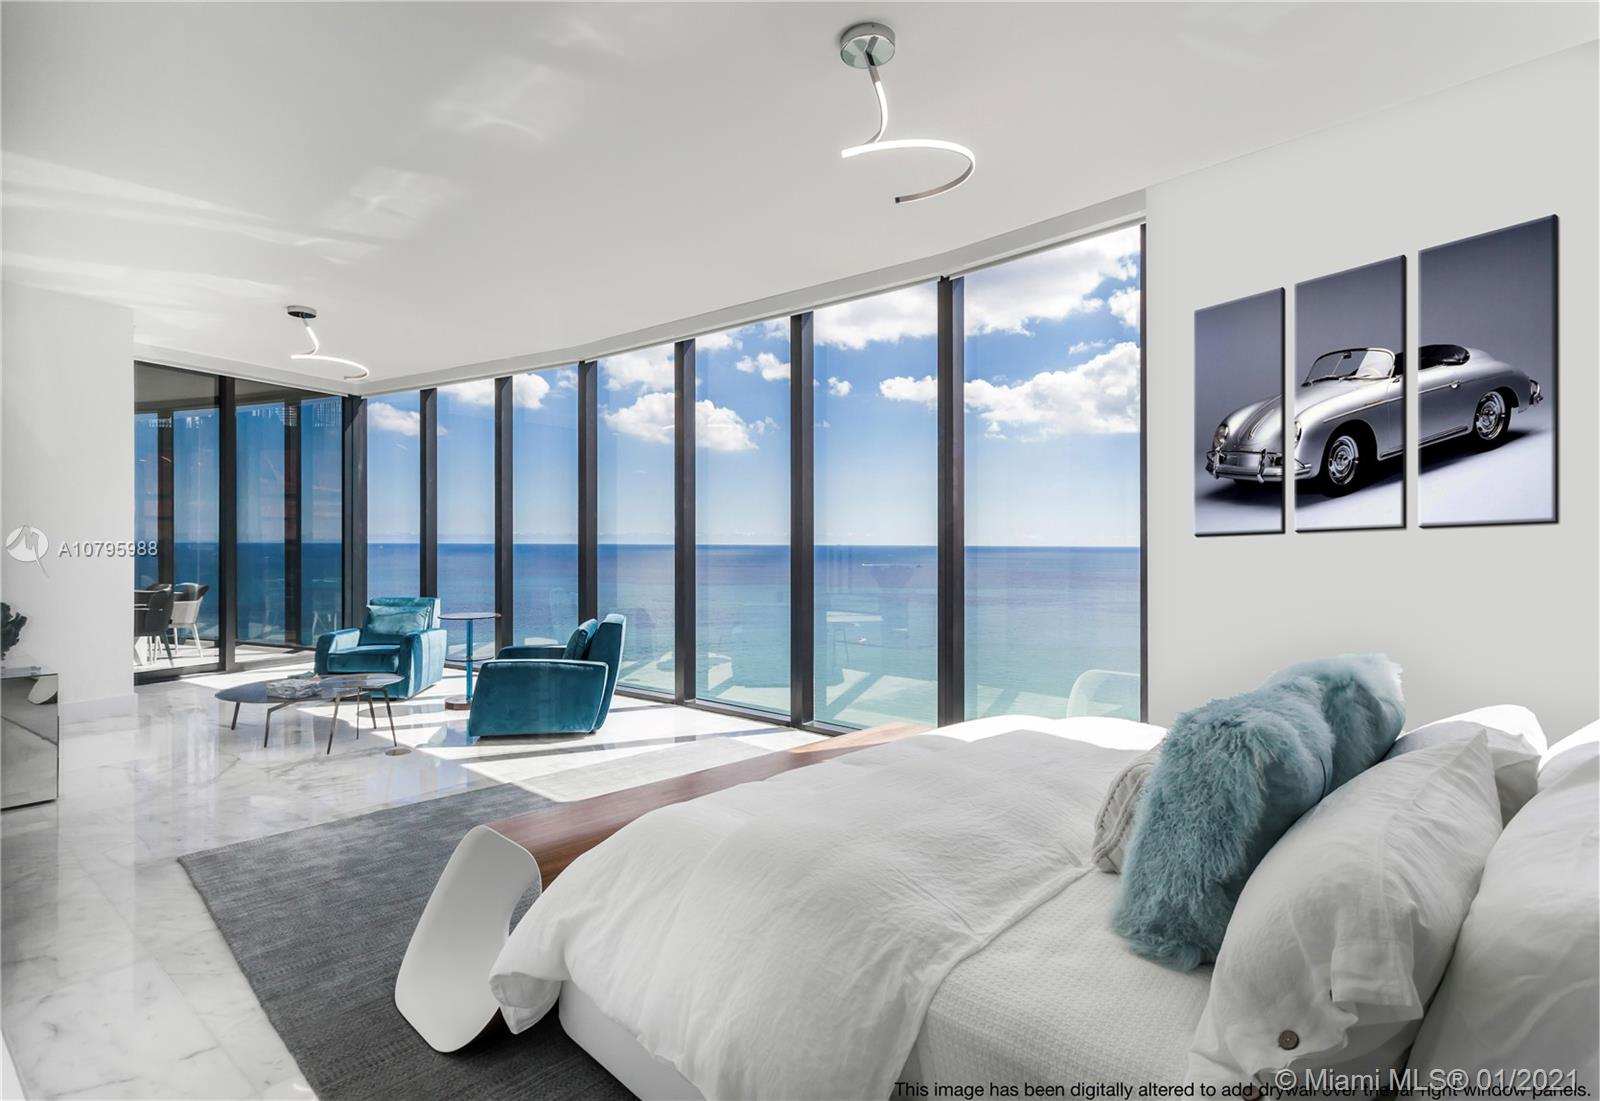 A Luxury Turnkey unit; all Italian furnitures are included ready to move in!! This beautiful Apt has direct Ocean & intracoastal Views. 2 car Parking space at the unit, High Tech Dezervator (car elevator) for your 100% privacy. If your customer like Privacy, then this is the perfect Unit!! Private pool at your own balcony, Spa, Gym, Restaurant, Bar, Yoga, Game Room, walk to the Beach in a 5 stars VIP Service.